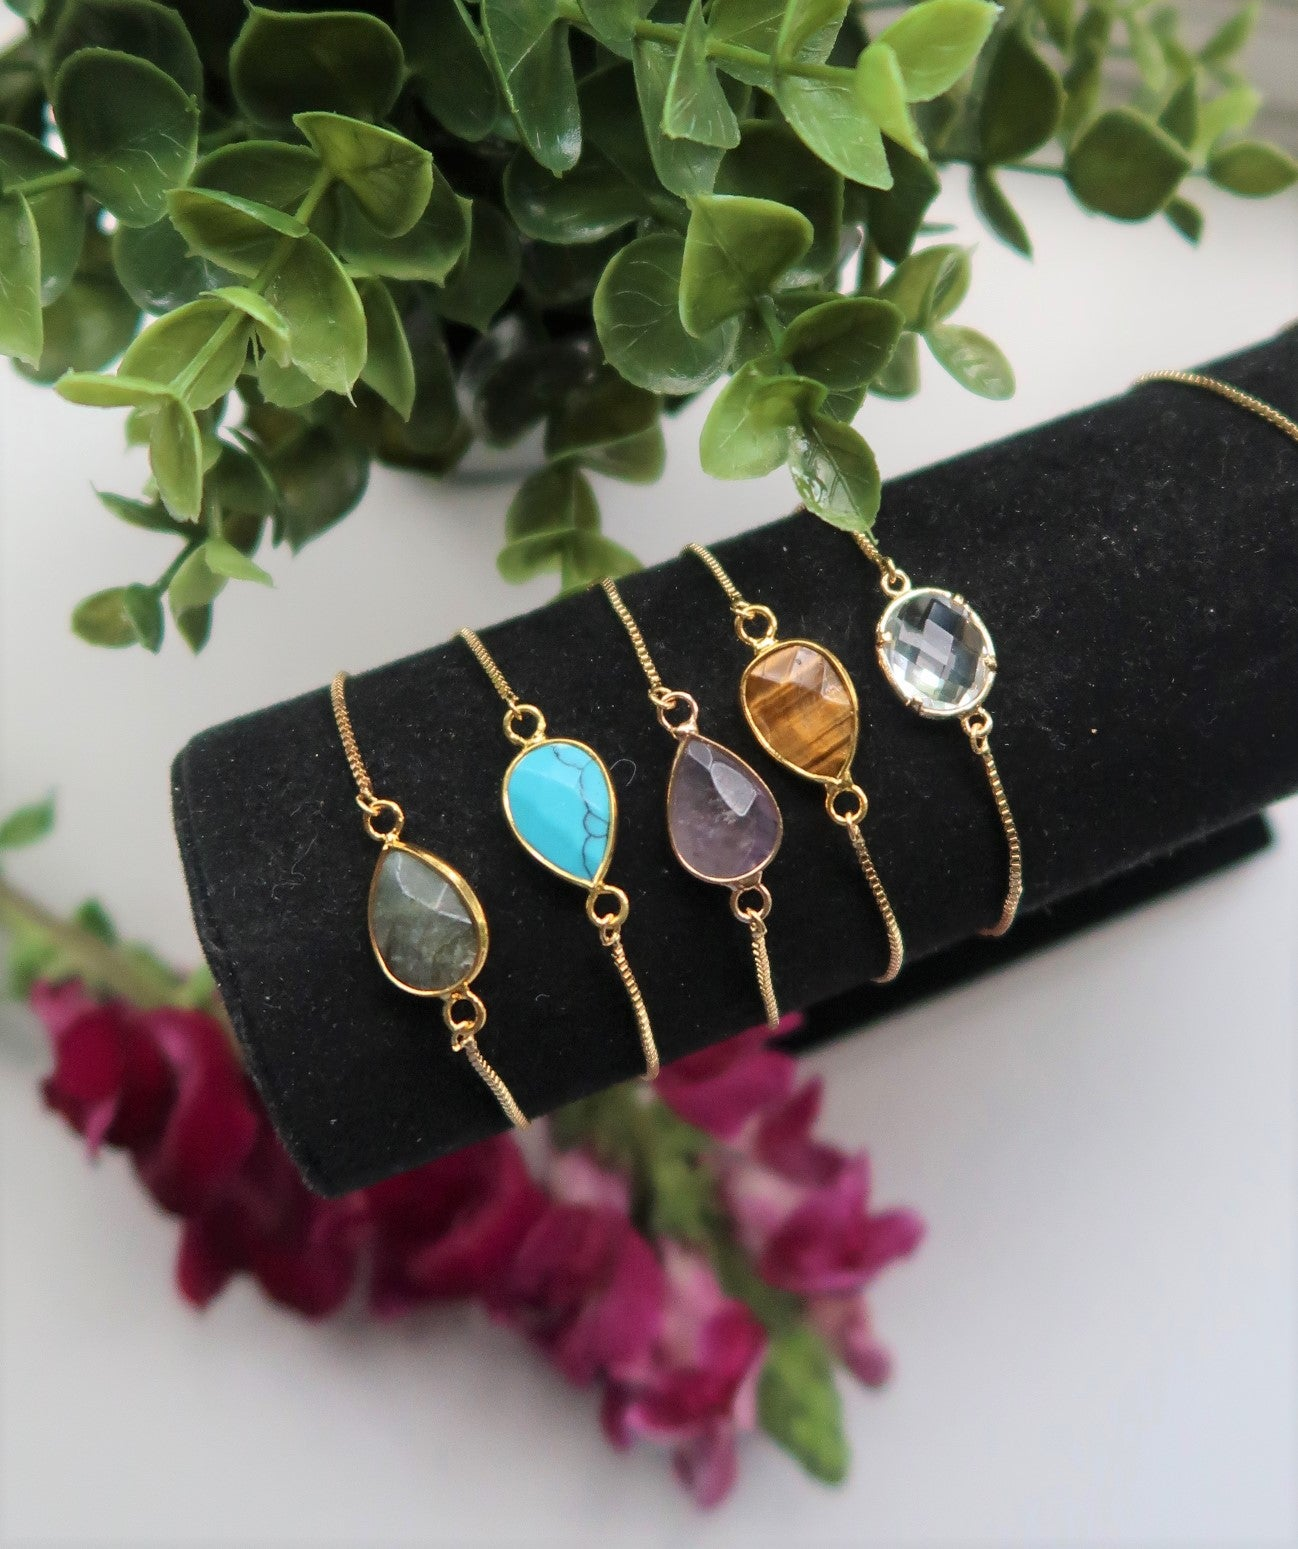 Modern Gemstone Birthstone Handmade Gold Bracelet, Jewellery, Bridal Party Proposal